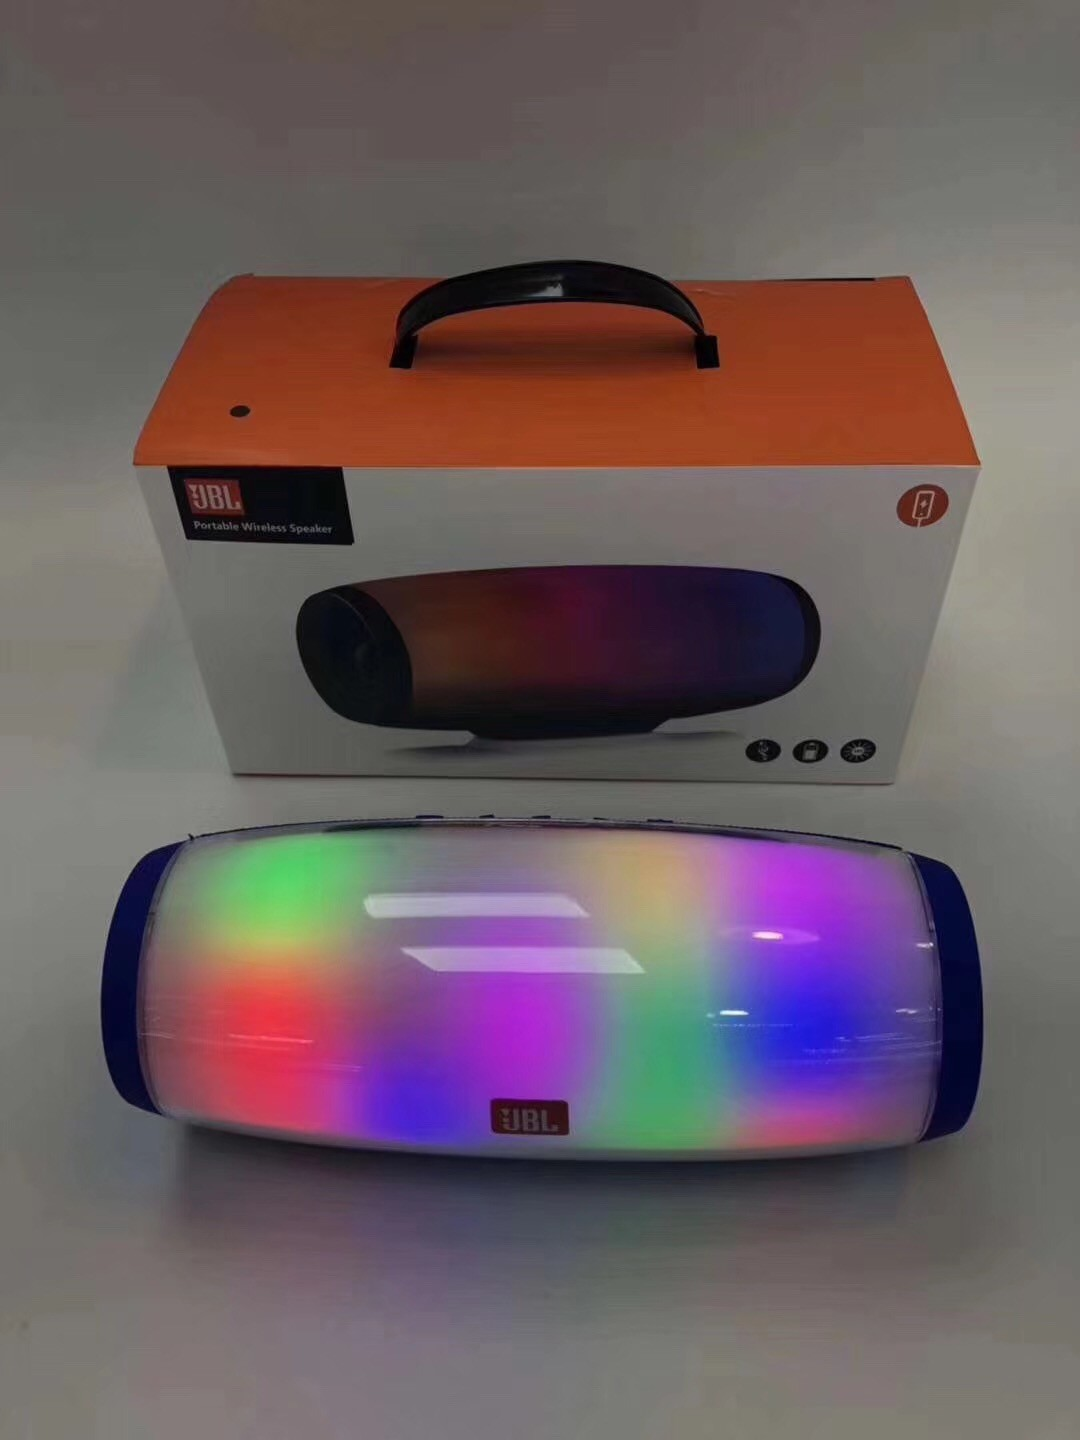 Hot and new Bluetooth Speaker With colorful LED Light Manufacturers, Hot and new Bluetooth Speaker With colorful LED Light Factory, Supply Hot and new Bluetooth Speaker With colorful LED Light